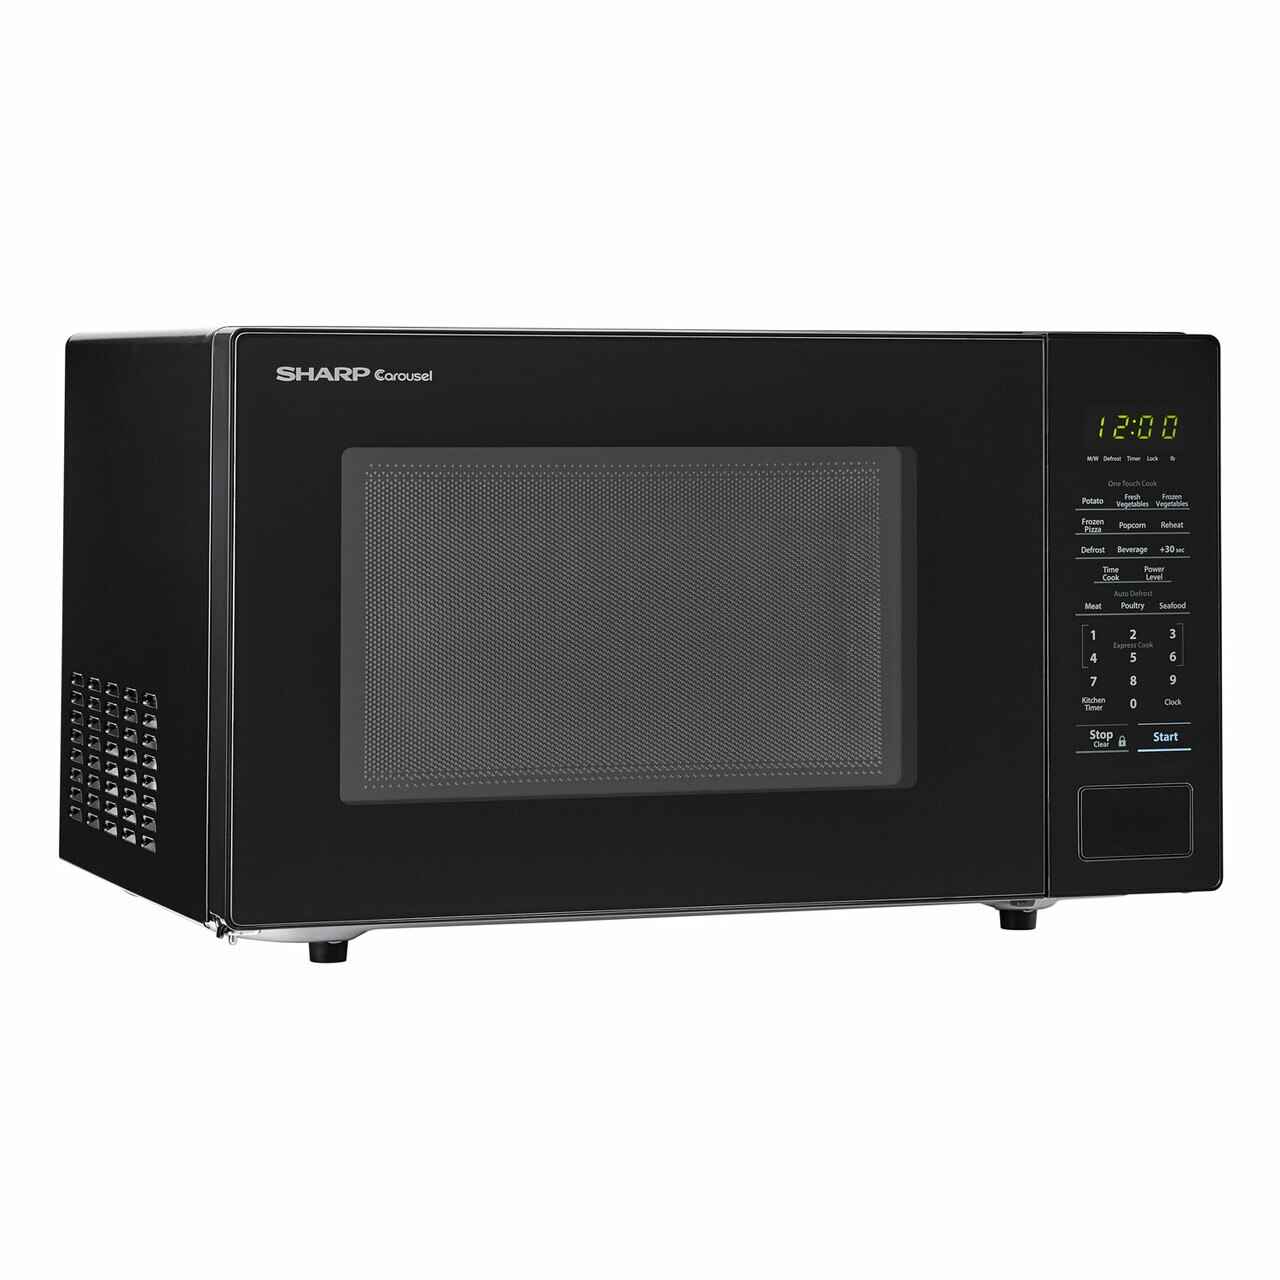 Sharp 1.1 cu. ft. Black Countertop Microwave (SMC1131CB) – right angle view